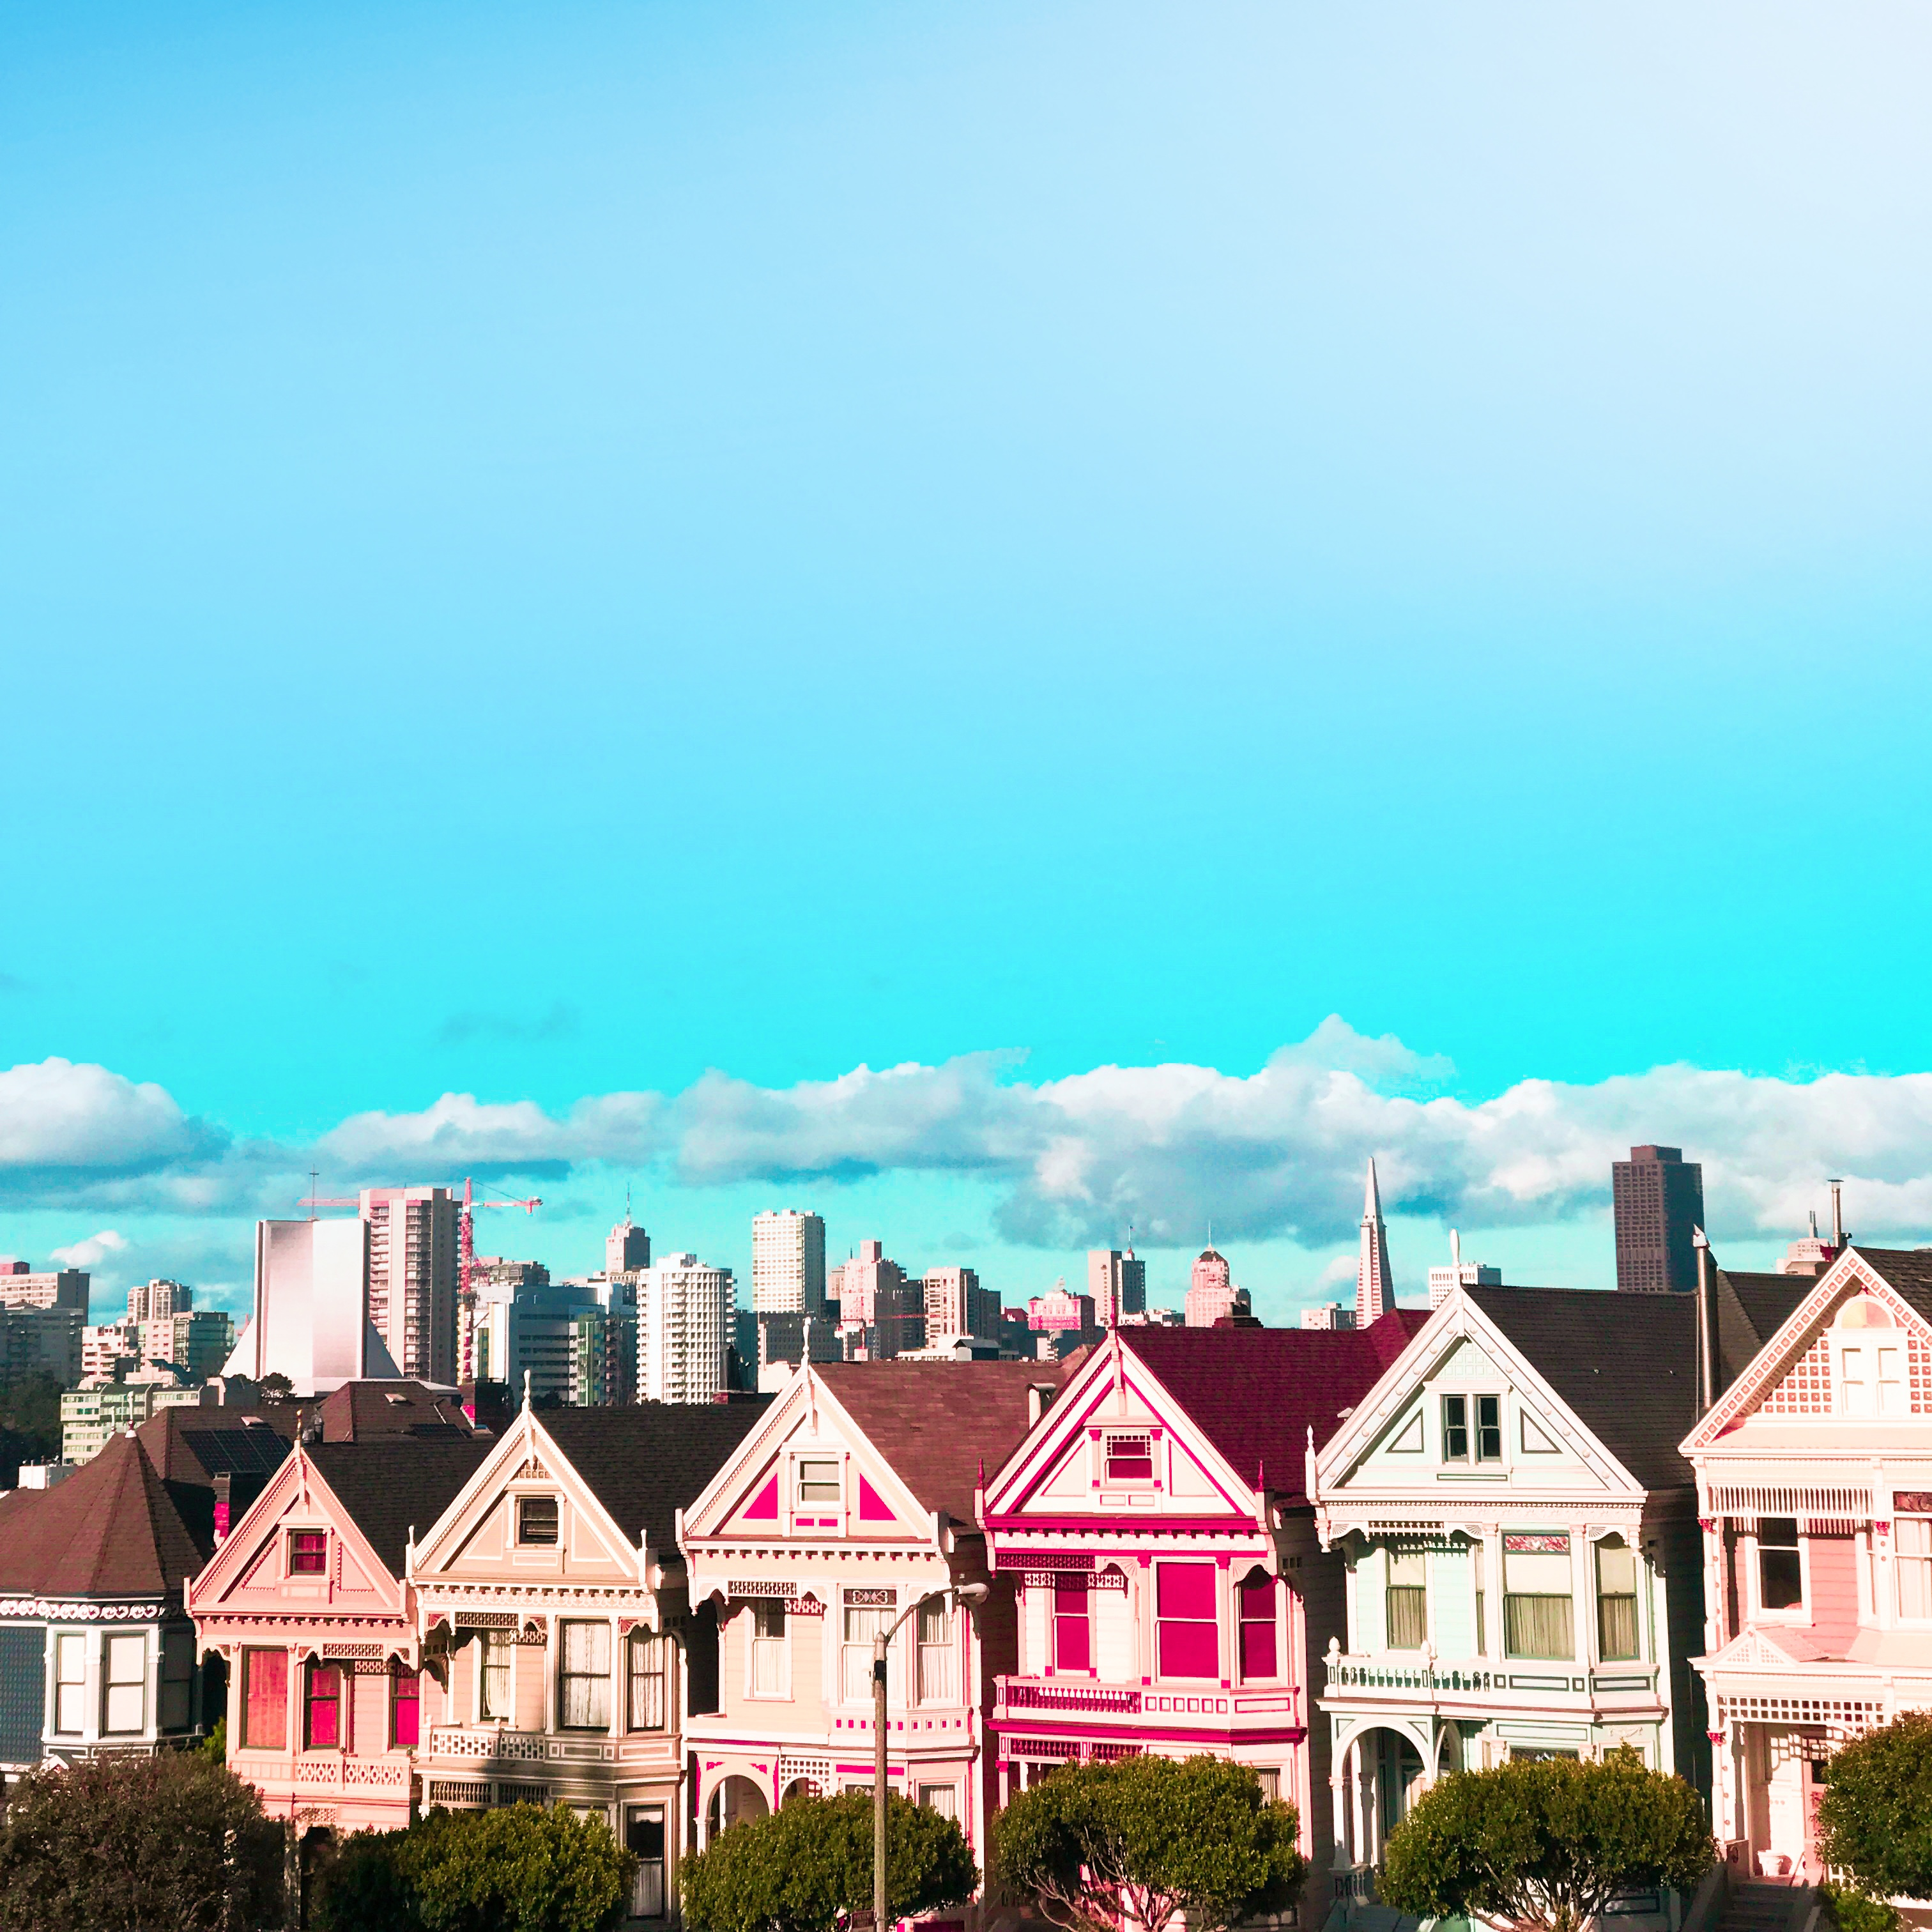 A beautiful capture of the famous Painted Ladies in San Francisco.